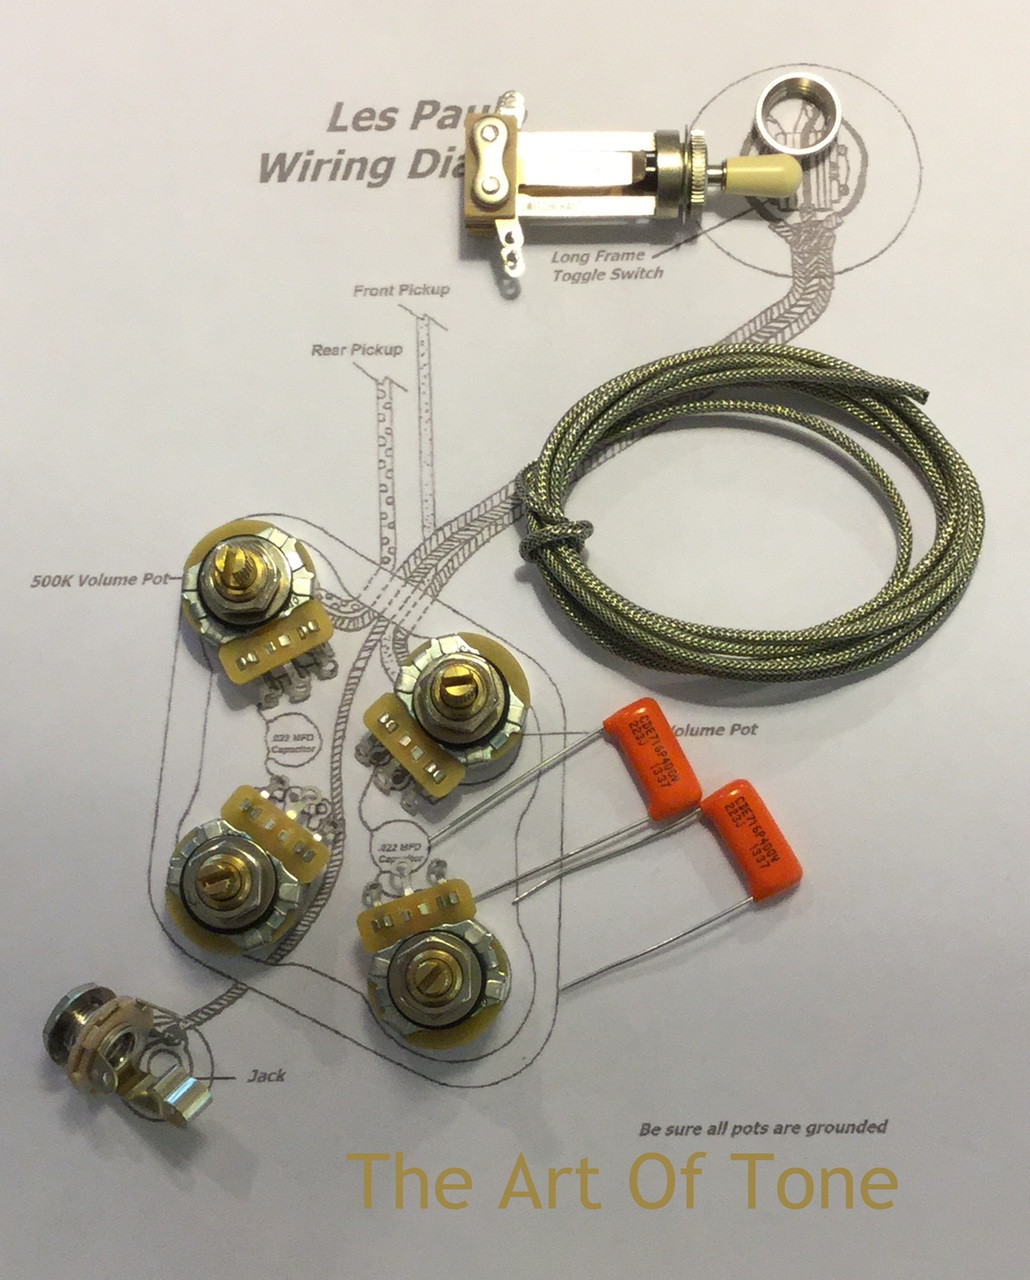 ... TAOT Gibson Les Paul Wiring Kit - Short Shaft - Orange Drop Caps The  Art Of ...